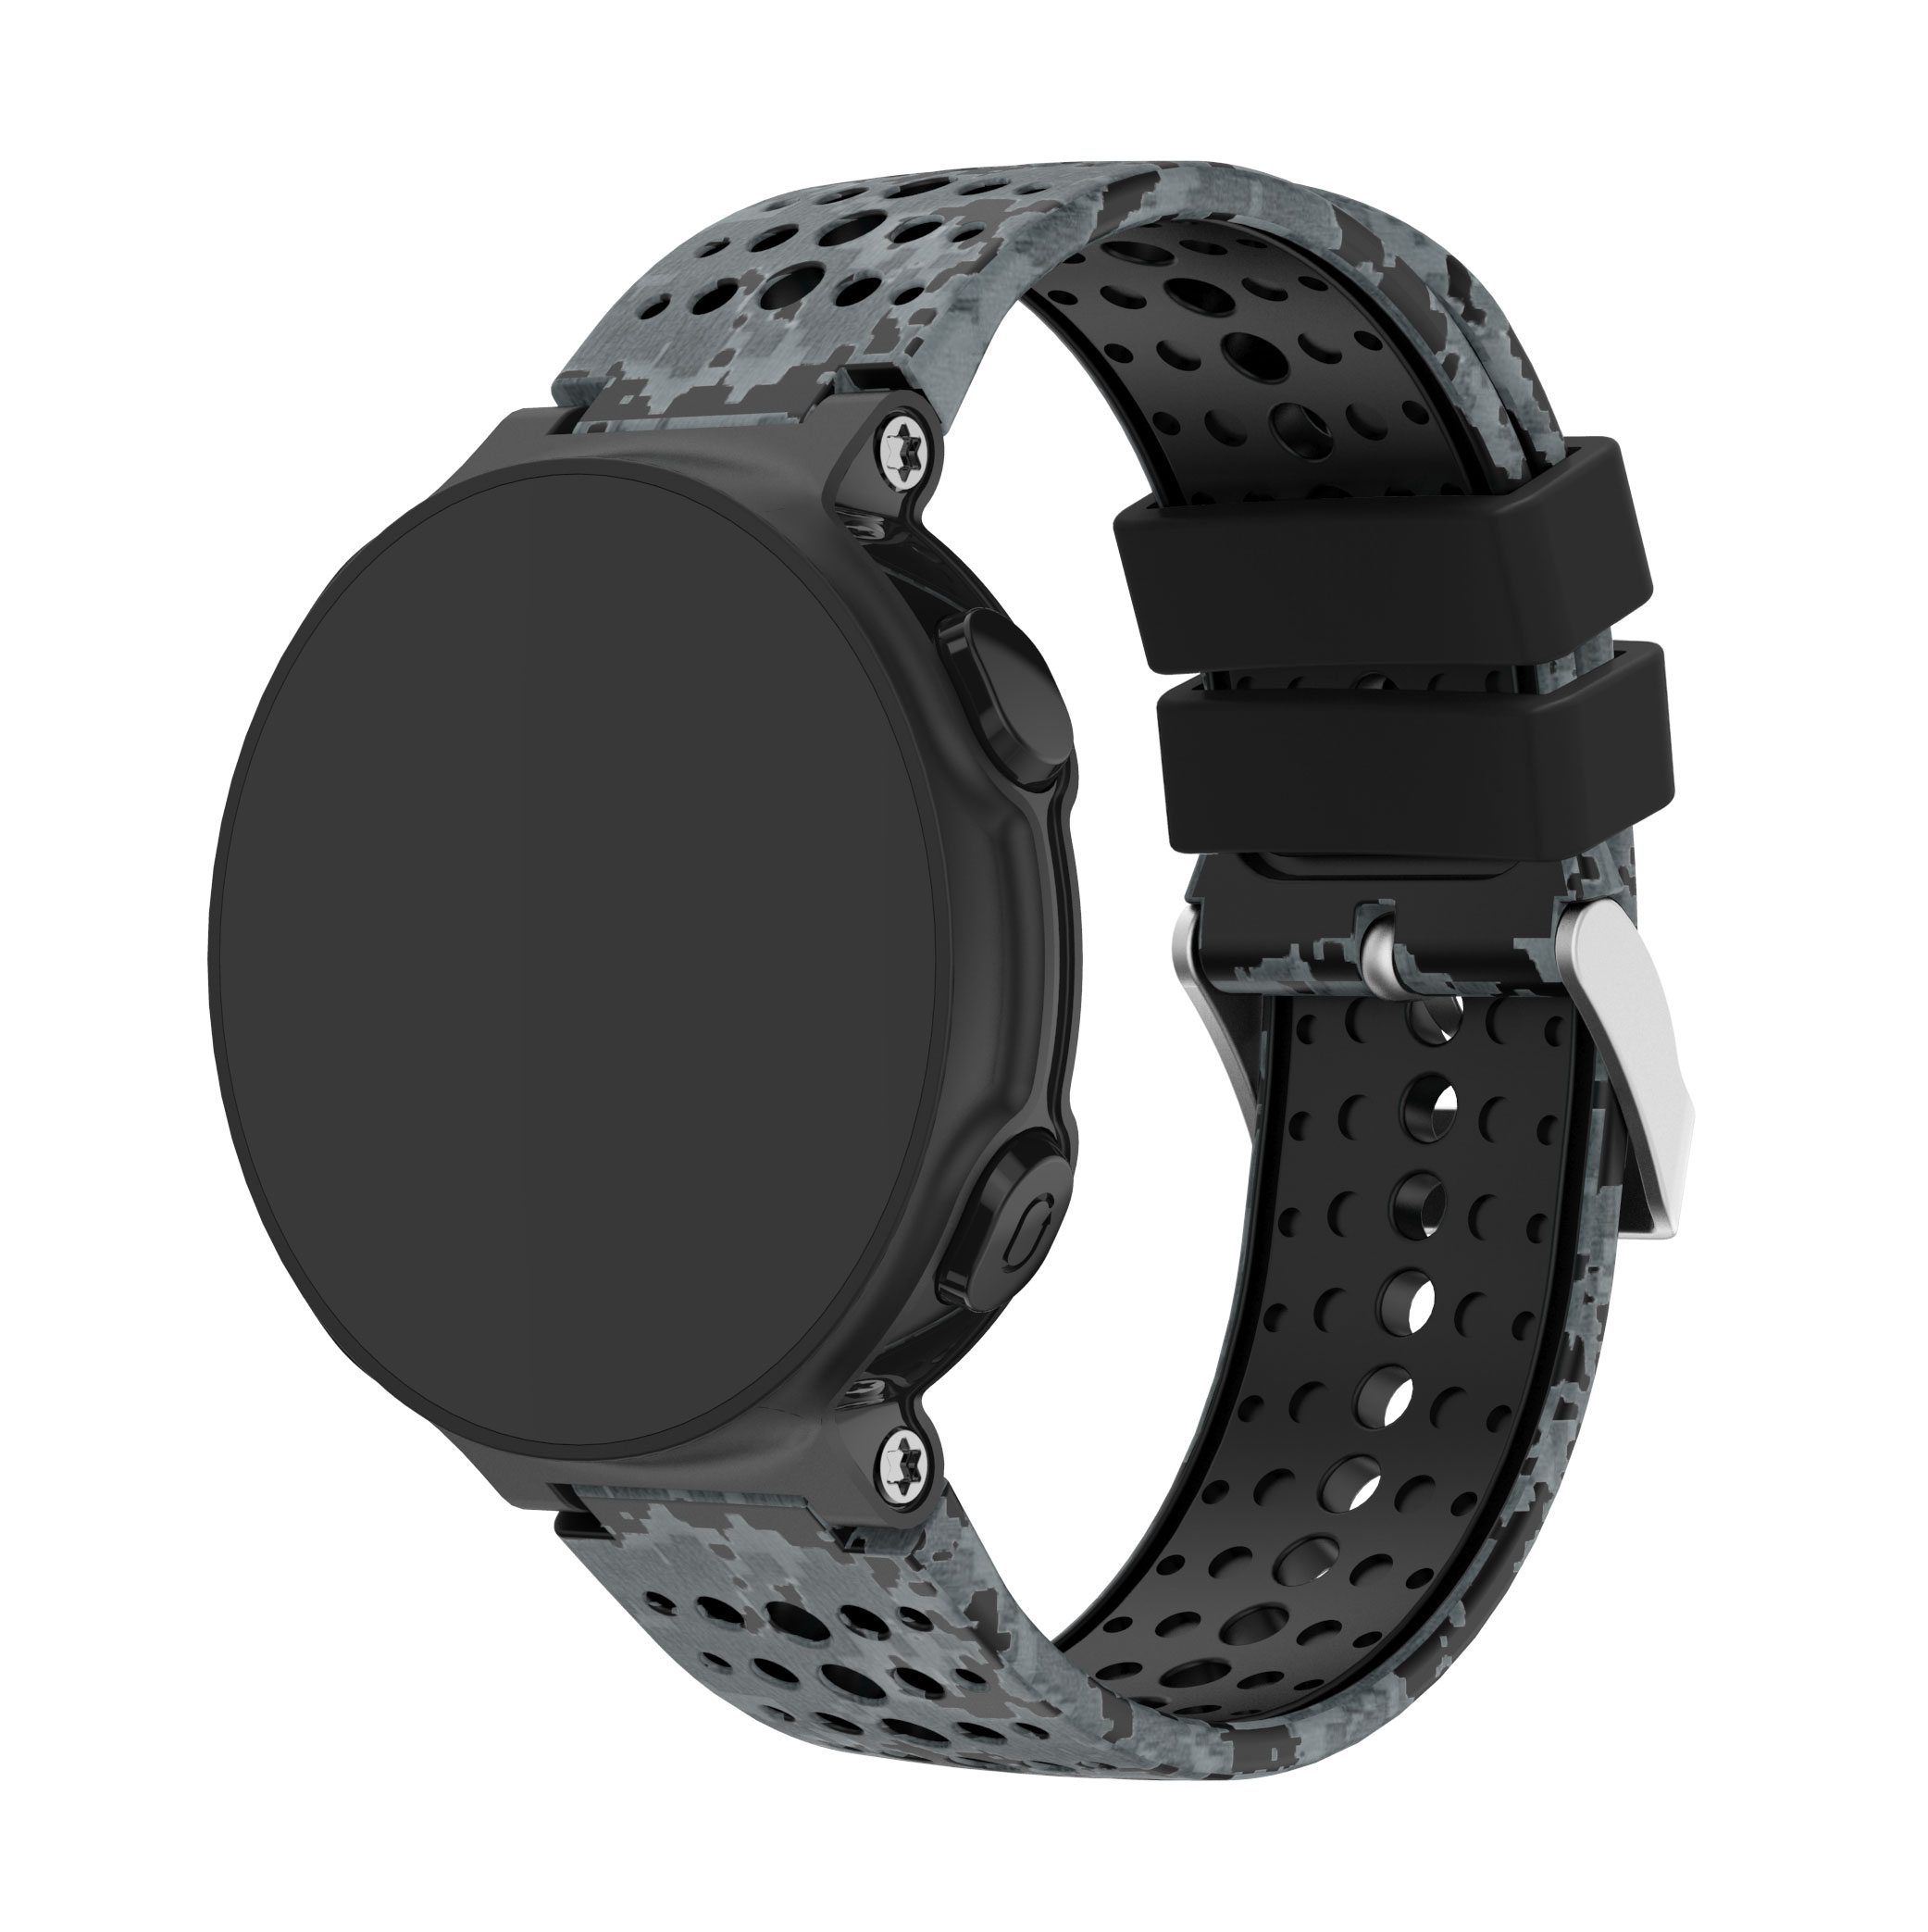 Yayuu Printed Silicone Watch Band For Garmin Forerunner 220/230/235/620/630/735XT Bracelet Replacement Wrist Strap   Buckle band-in Smart Accessories from Consumer Electronics